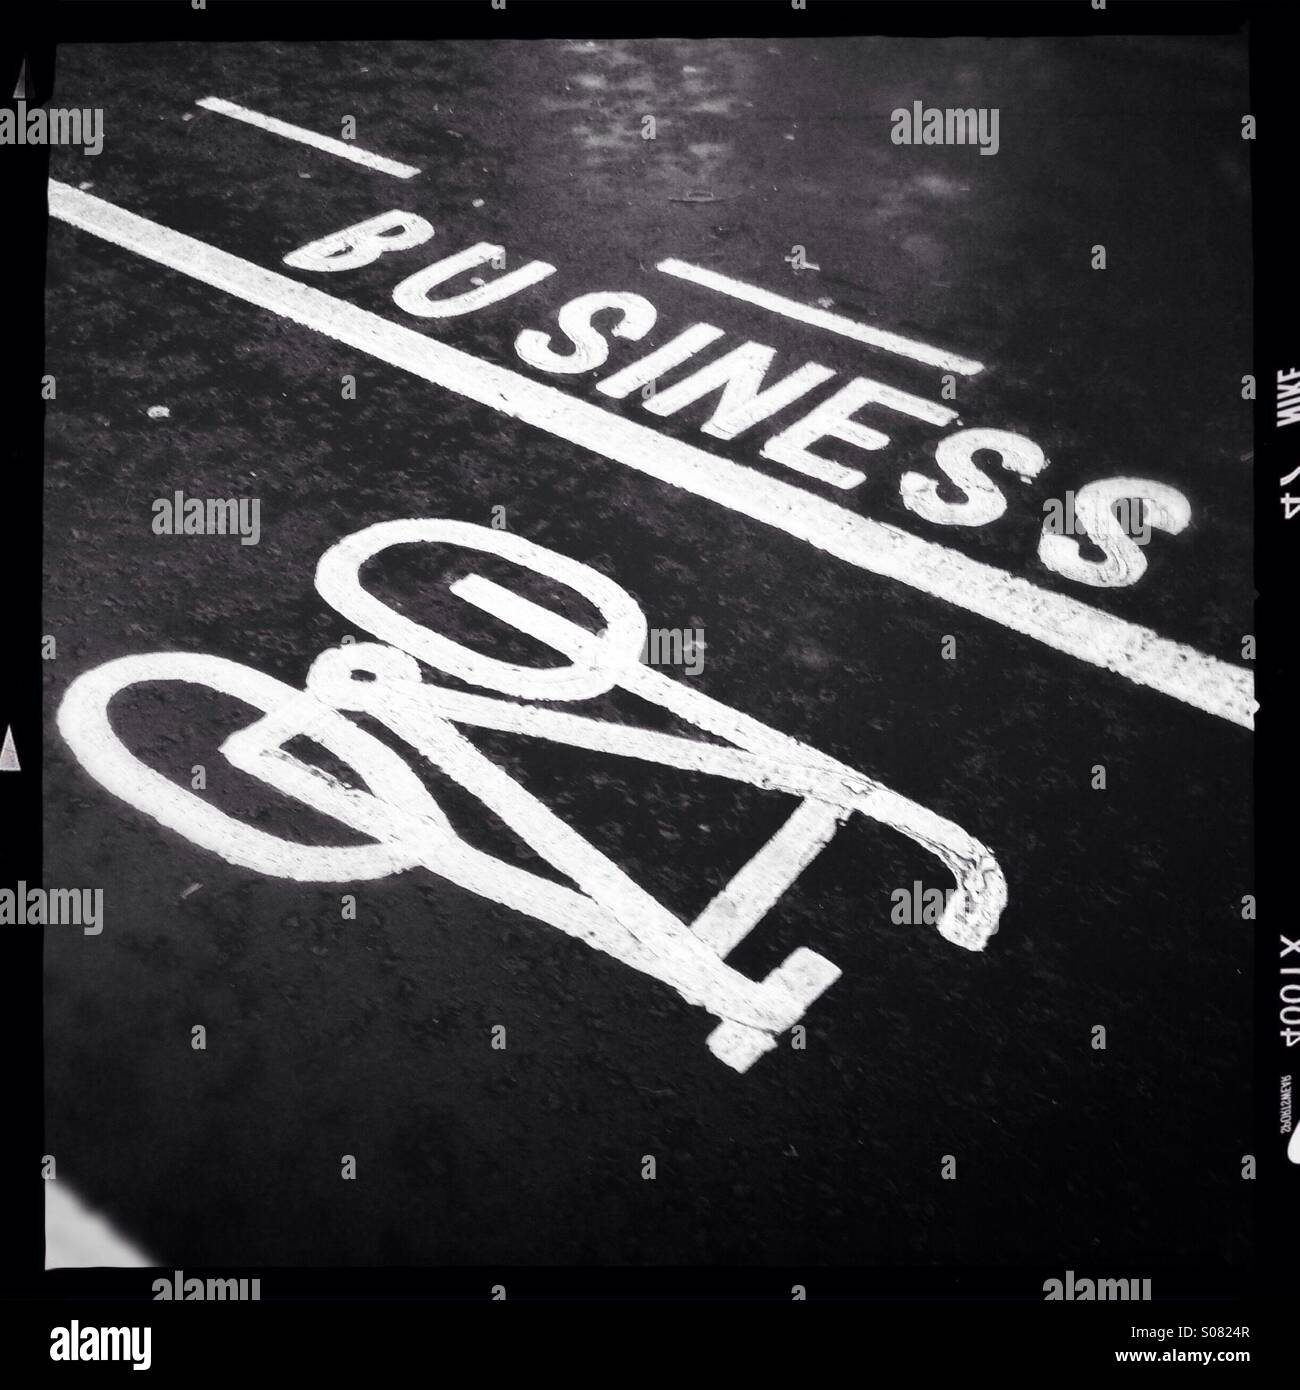 Painted signs on road: business and cycle - Stock Image